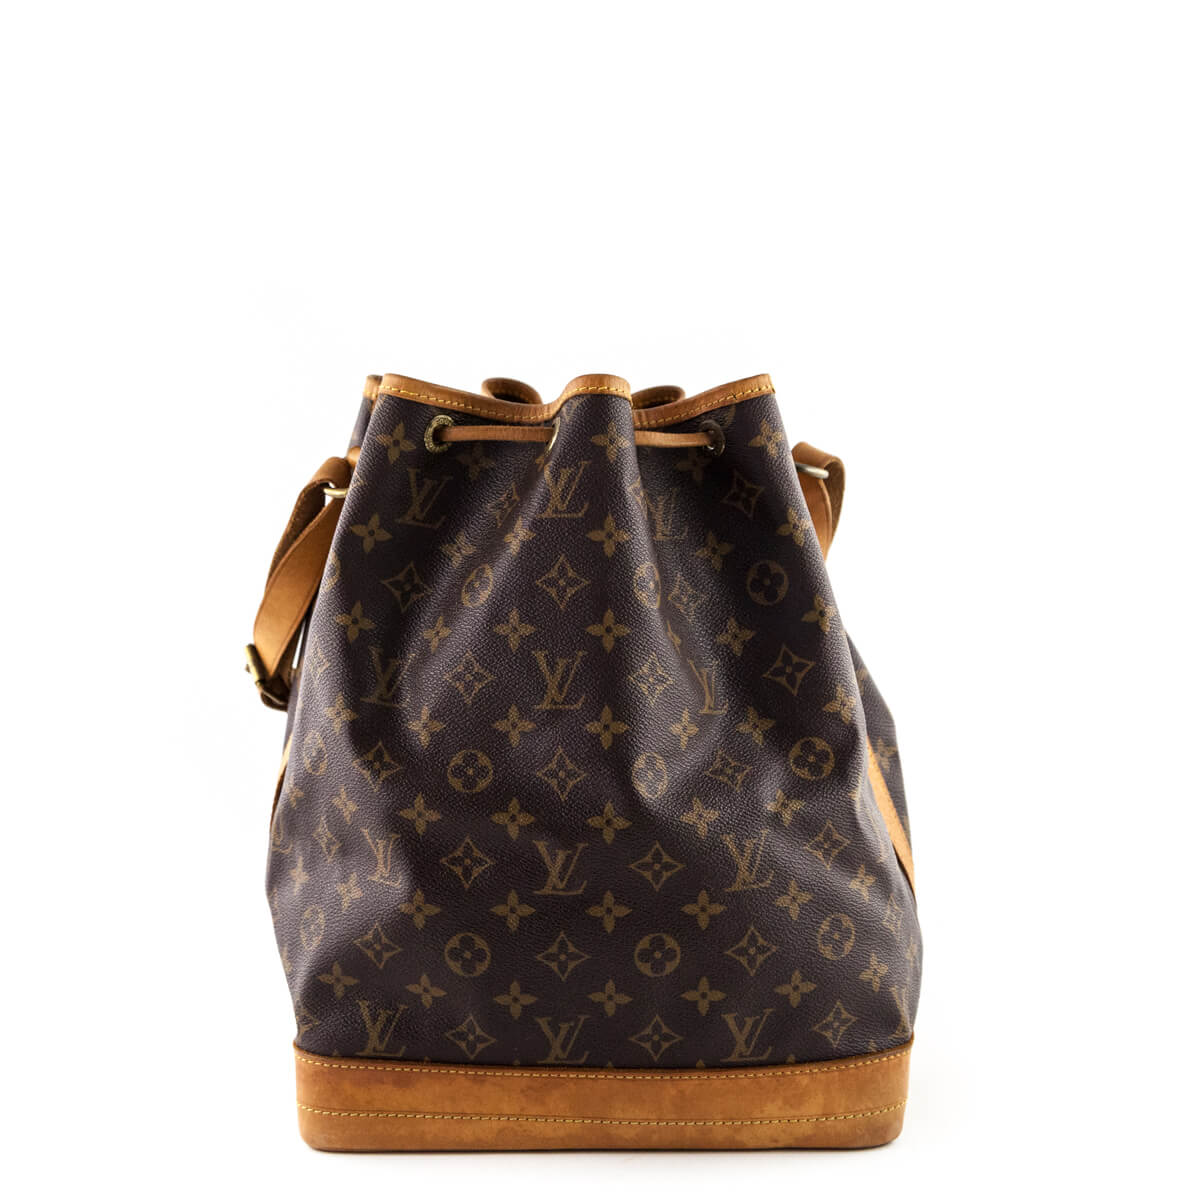 6e733ff184e ... Louis Vuitton Monogram Vintage Noe Bucket - LOVE that BAG - Preowned  Authentic Designer Handbags ...